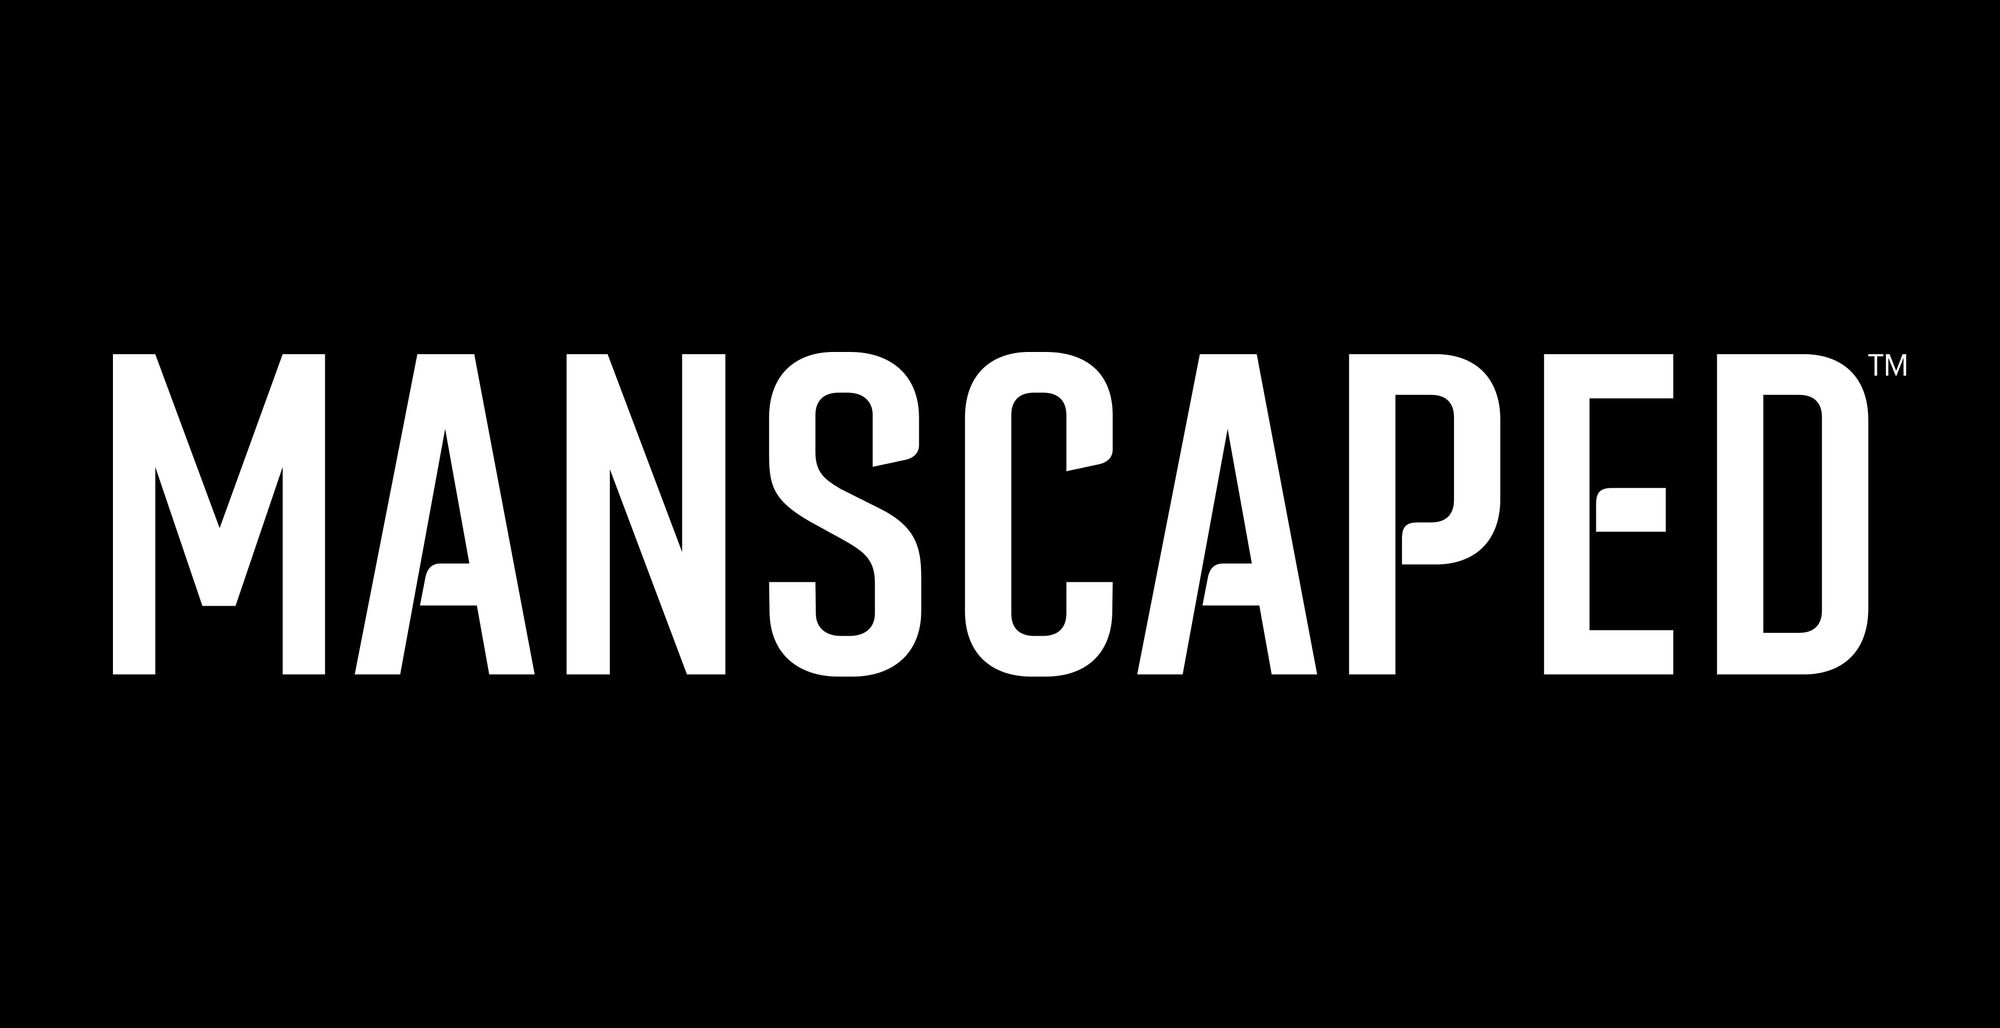 Is The Manscaped™ Crop Cleanser® Vegan?